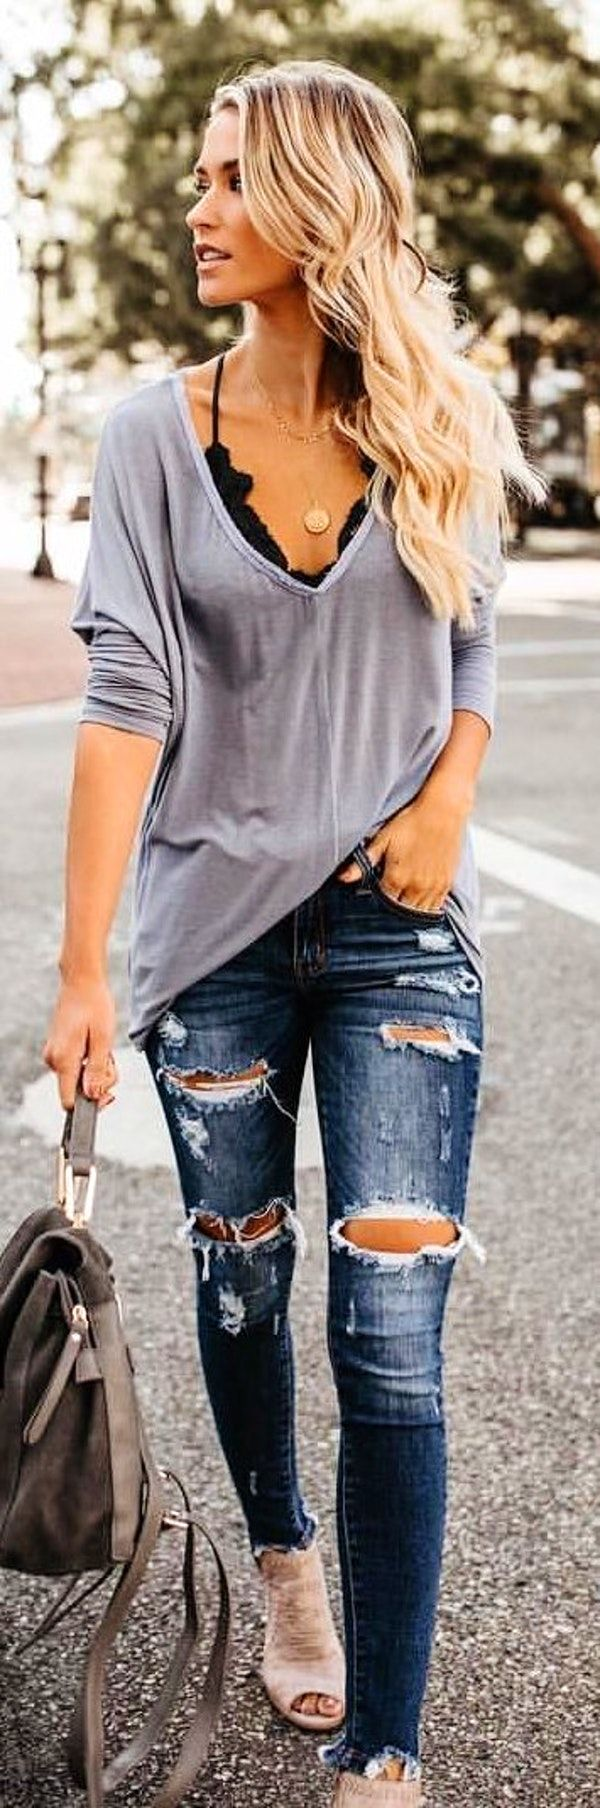 10+ Flawless Fall Outfits You Should Already Own